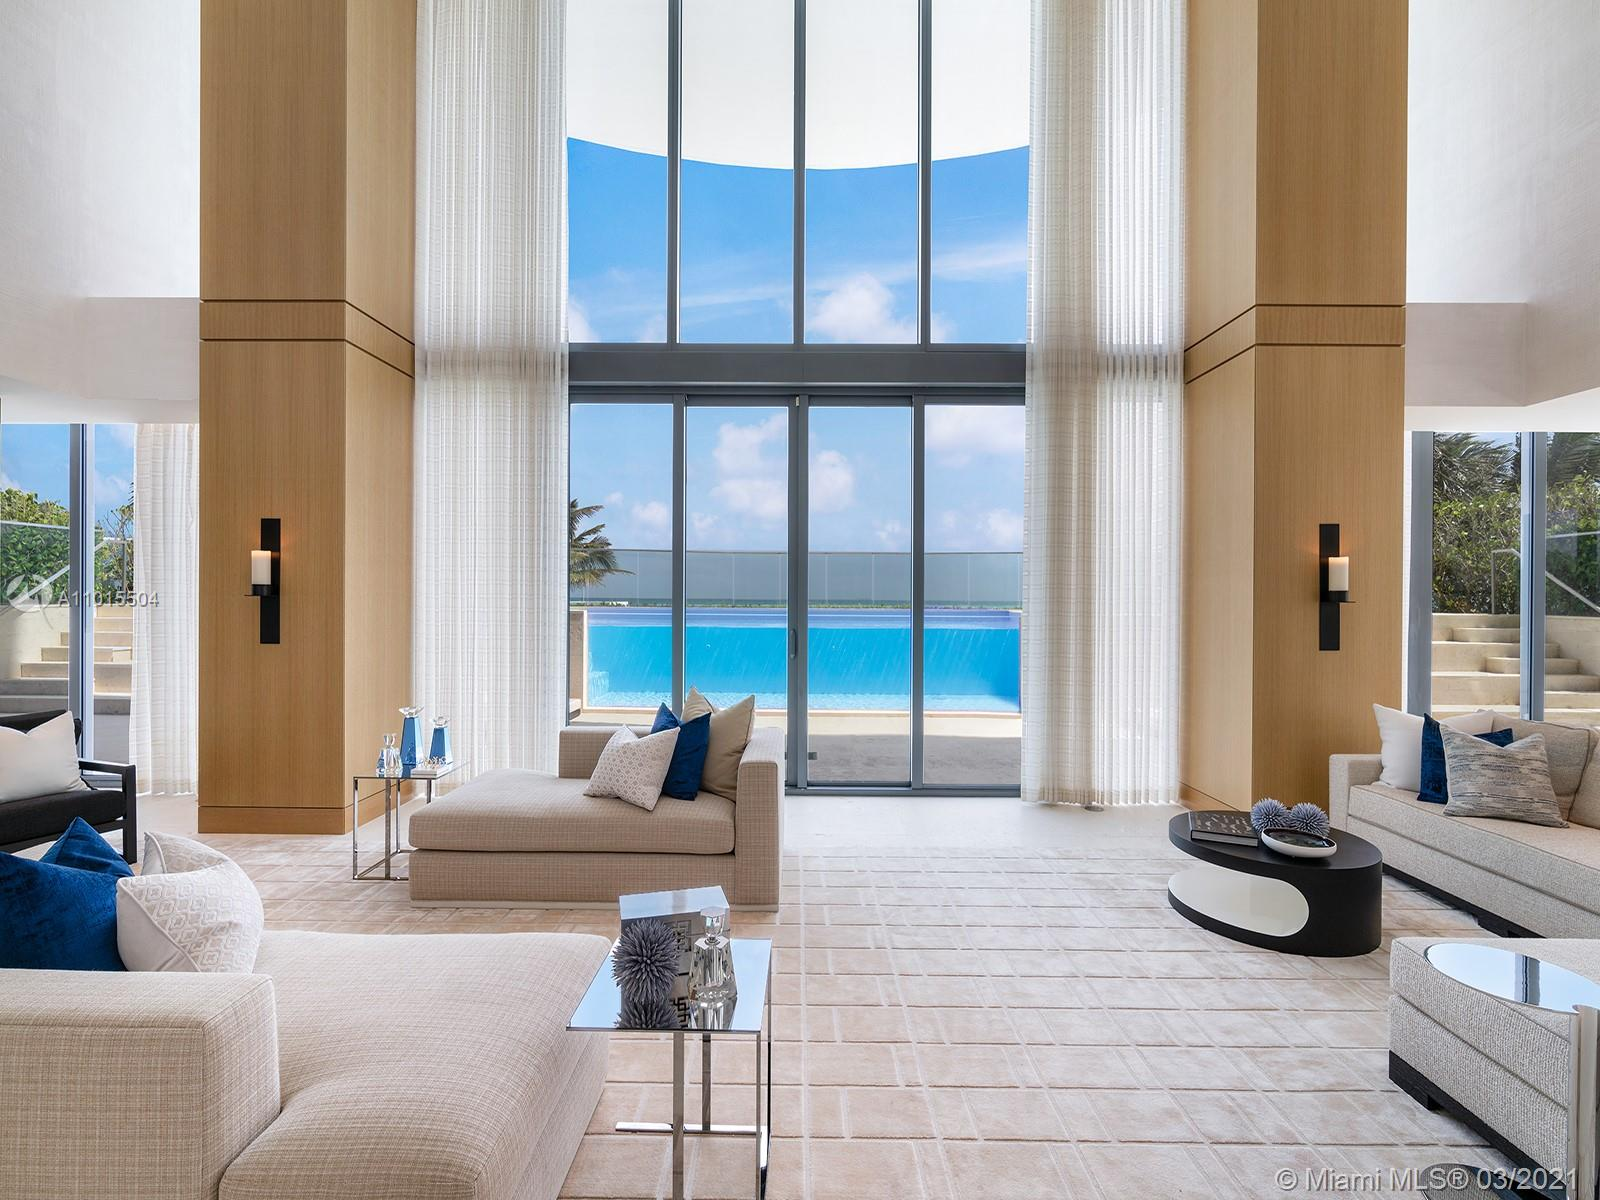 Details for 19575 Collins Ave  3, Sunny Isles Beach, FL 33160